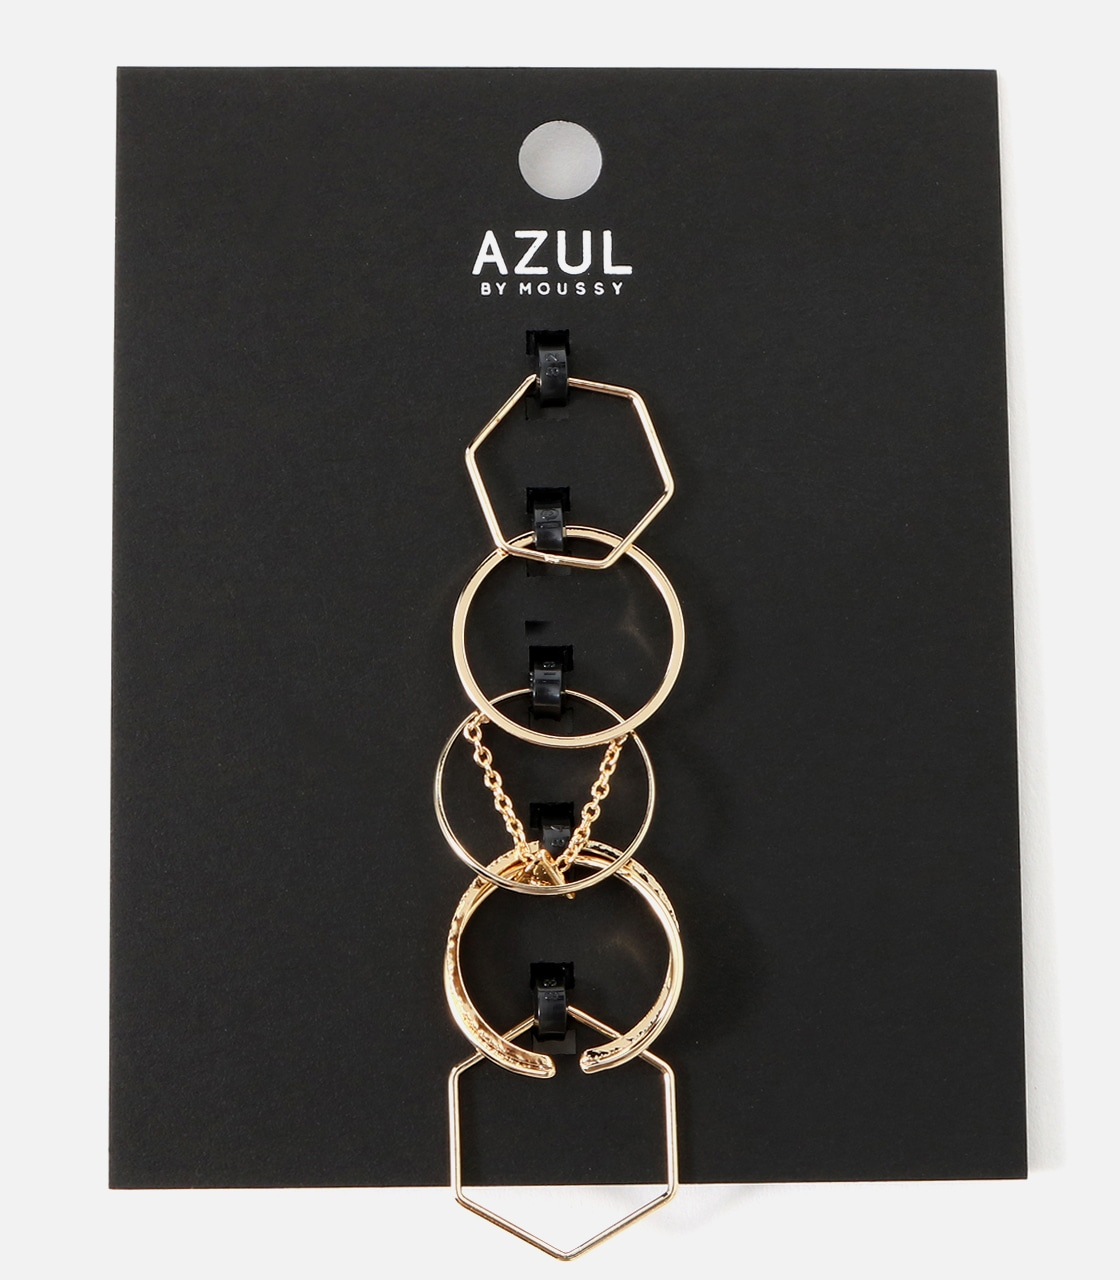 【AZUL BY MOUSSY】チェーンモチーフ5本SETリング 詳細画像 L/GLD 1